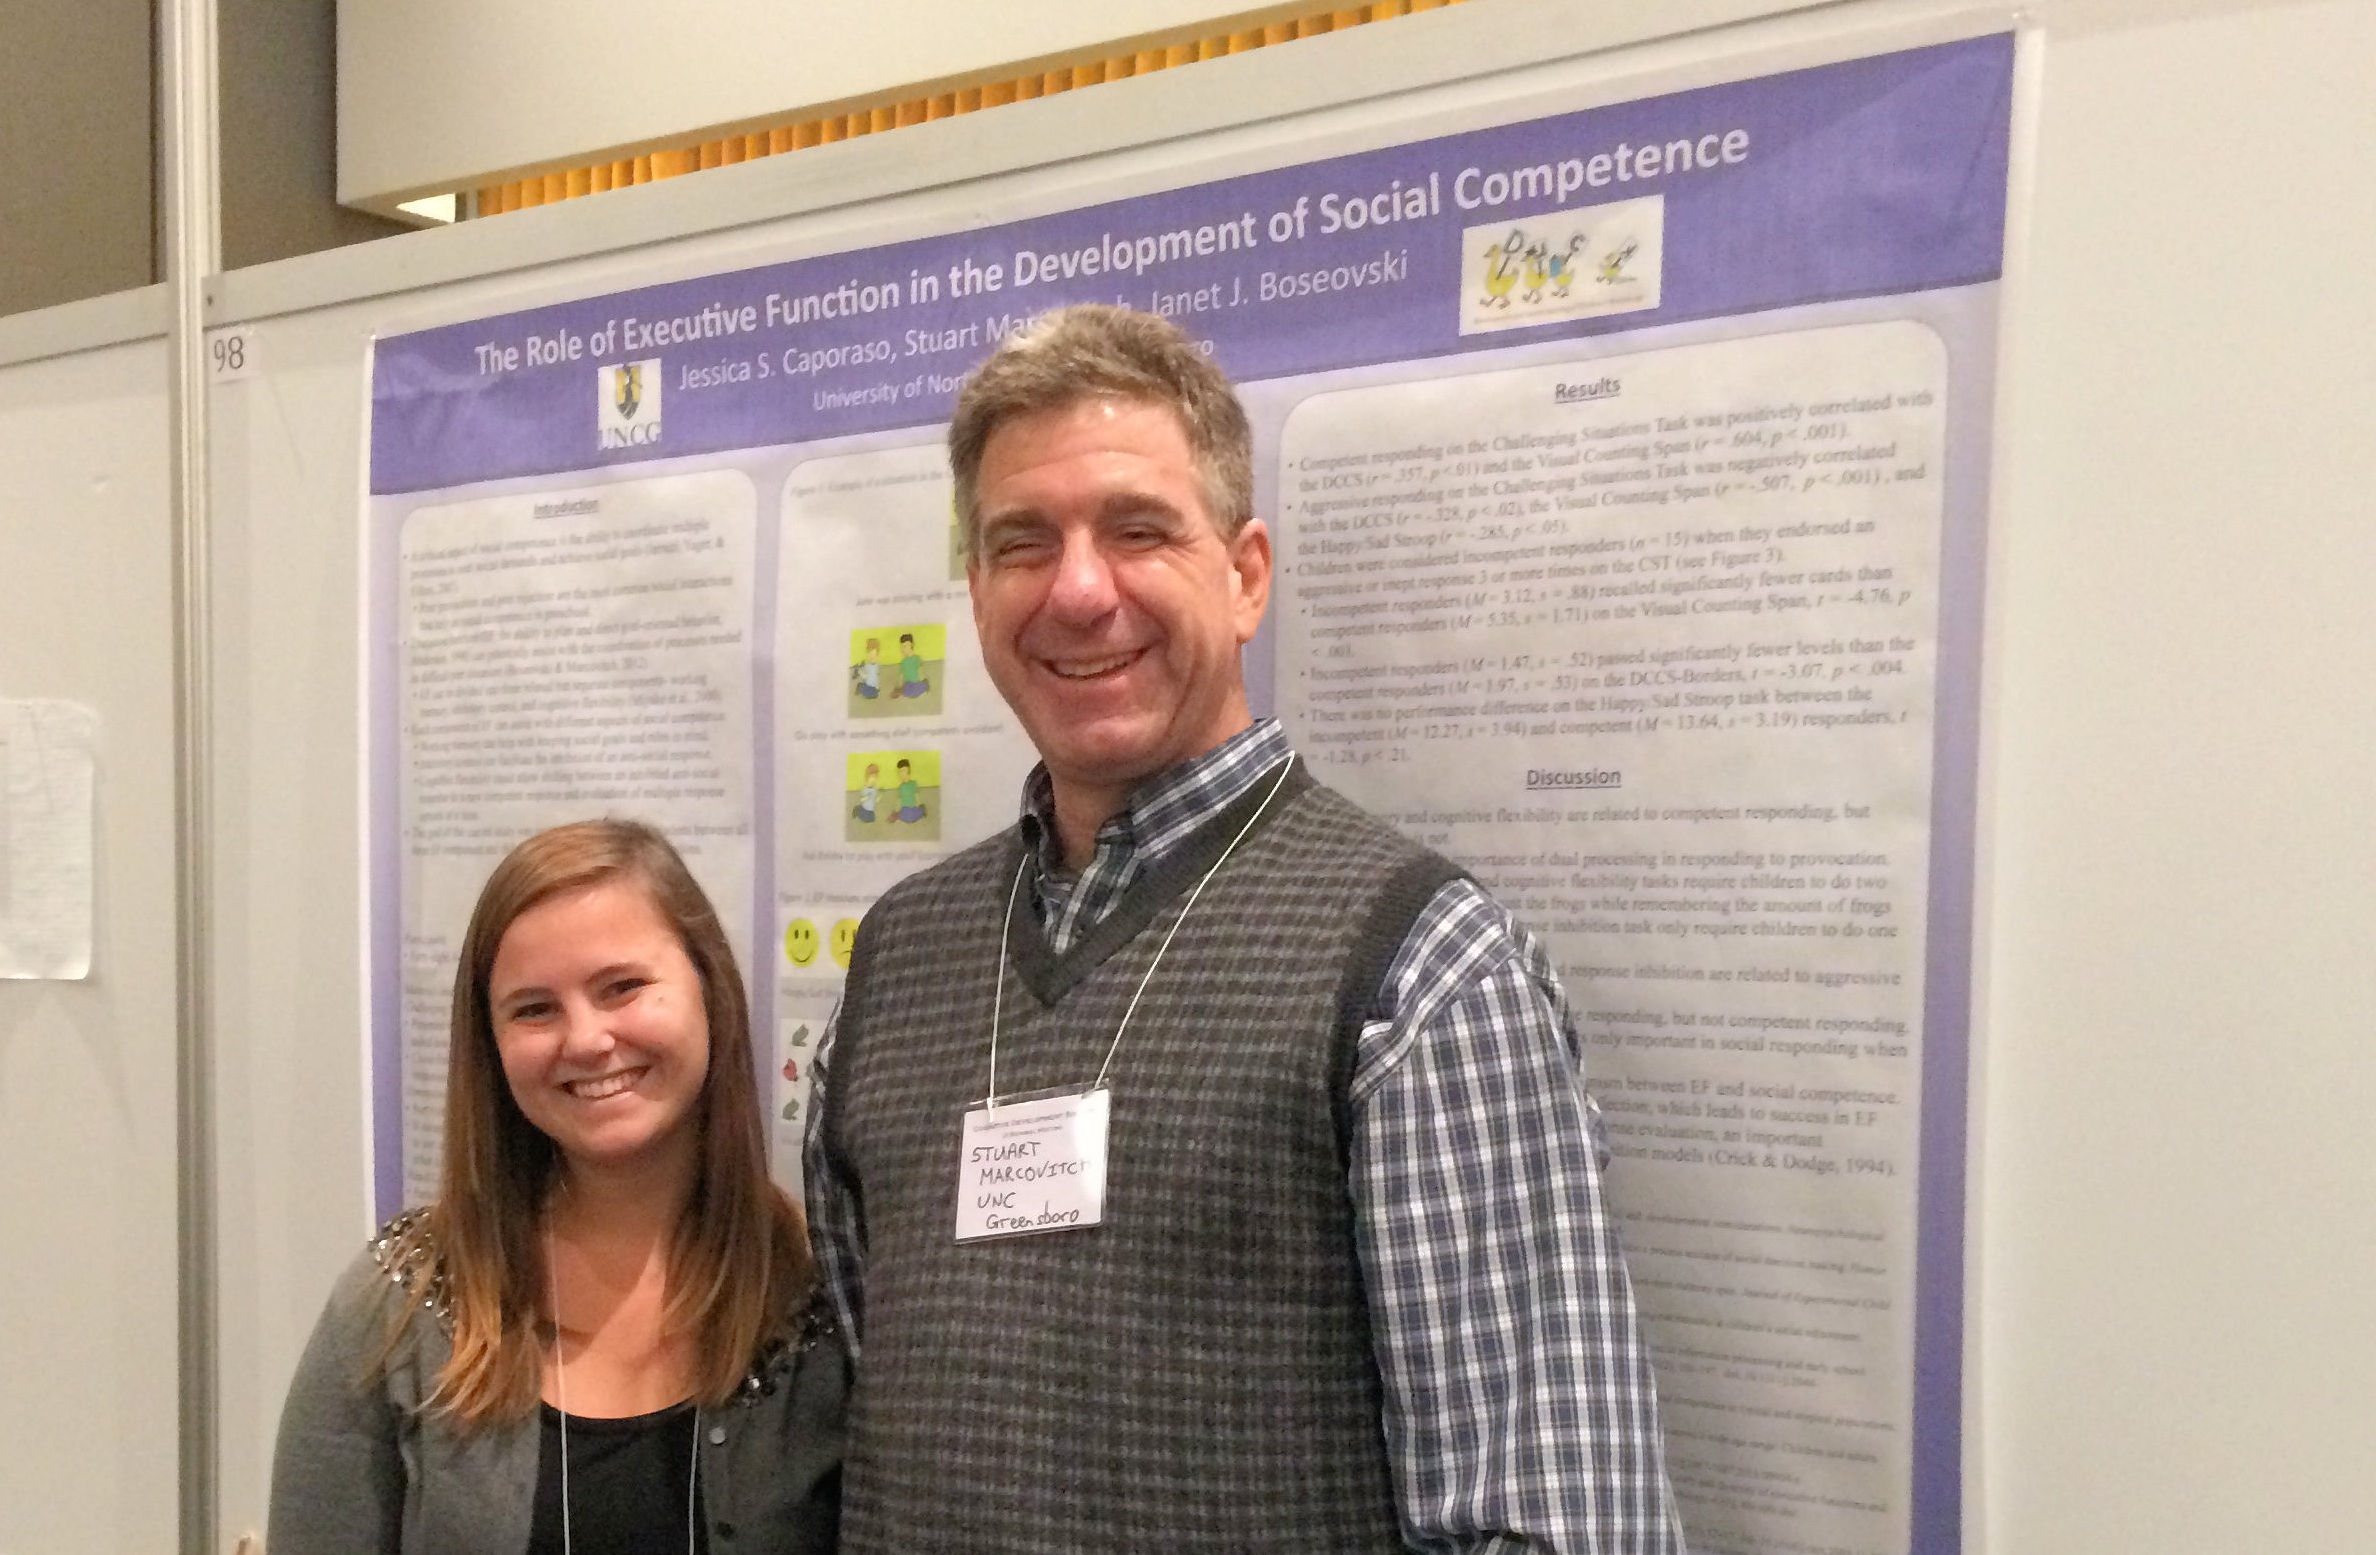 Stuart Marcovitch with graduate student Jessica Stark Caporaso, whose research focuses on how children's behavioral control skills are related to their social competence